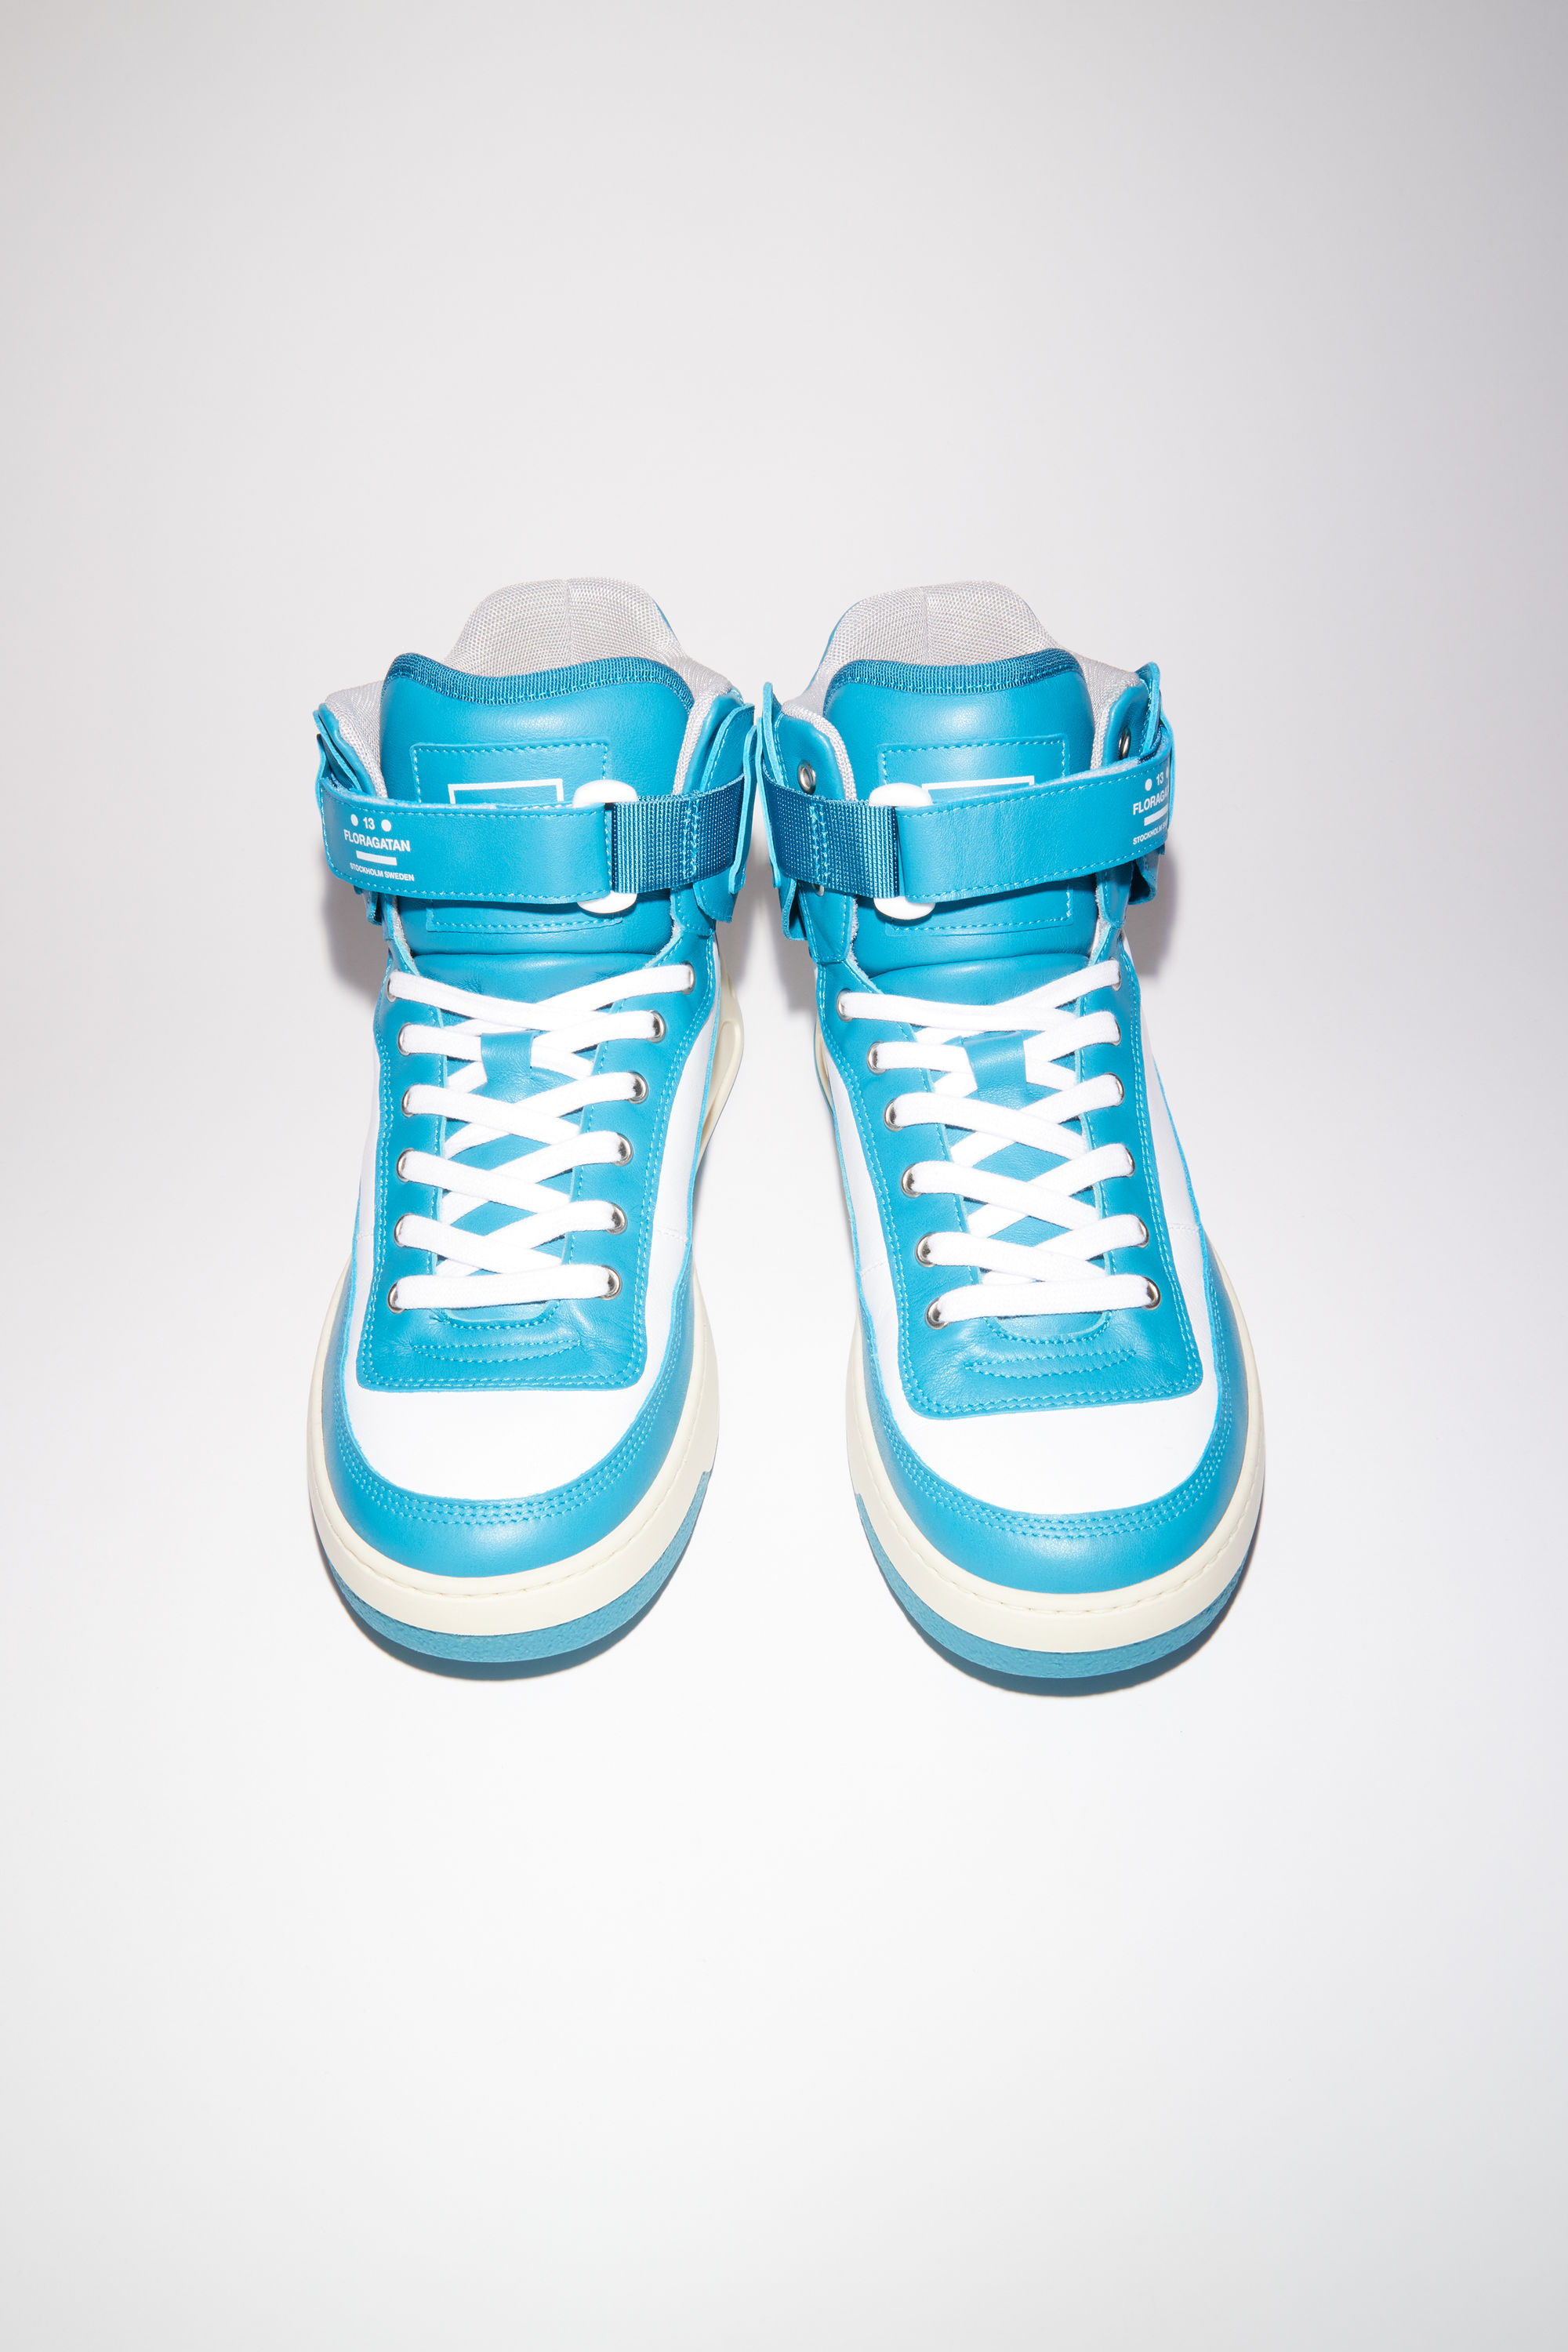 Acne Studios turquoise/white/white lace-up high top sneakers are made of calf leather with a face motif on the back sole. 002